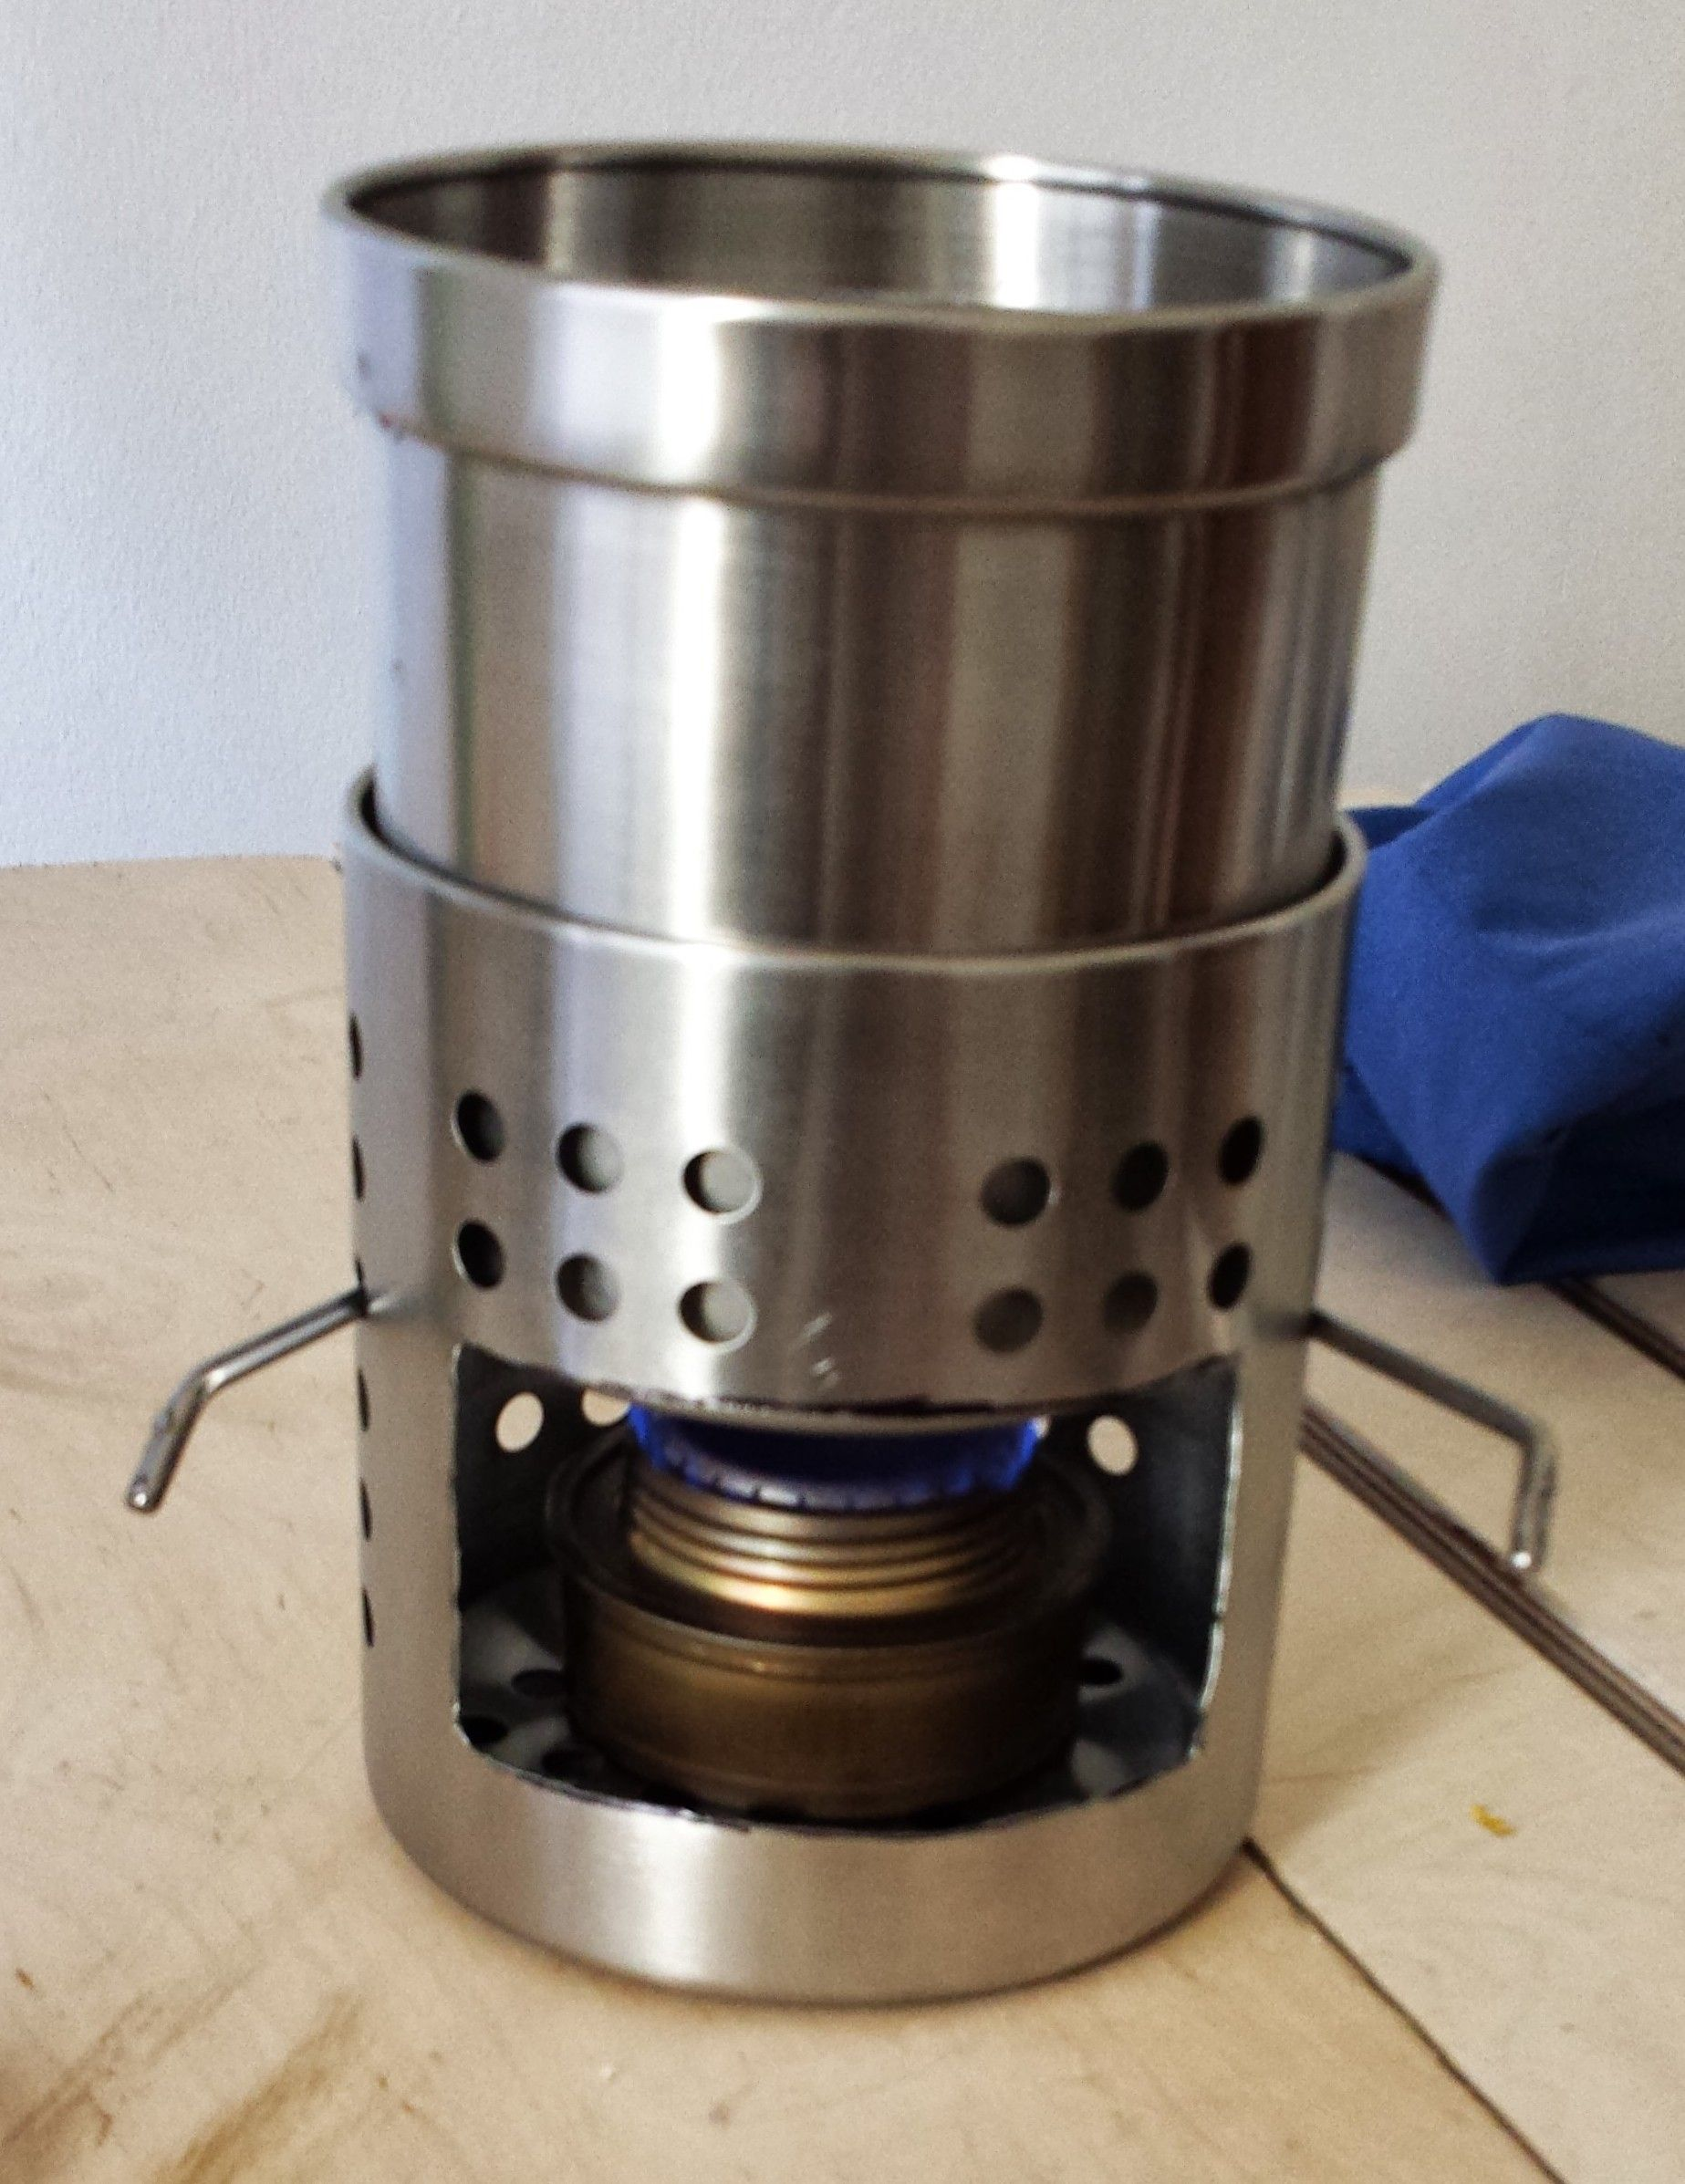 IKEA wood burner/alcohol stove   Camping/Related   Pinterest ...